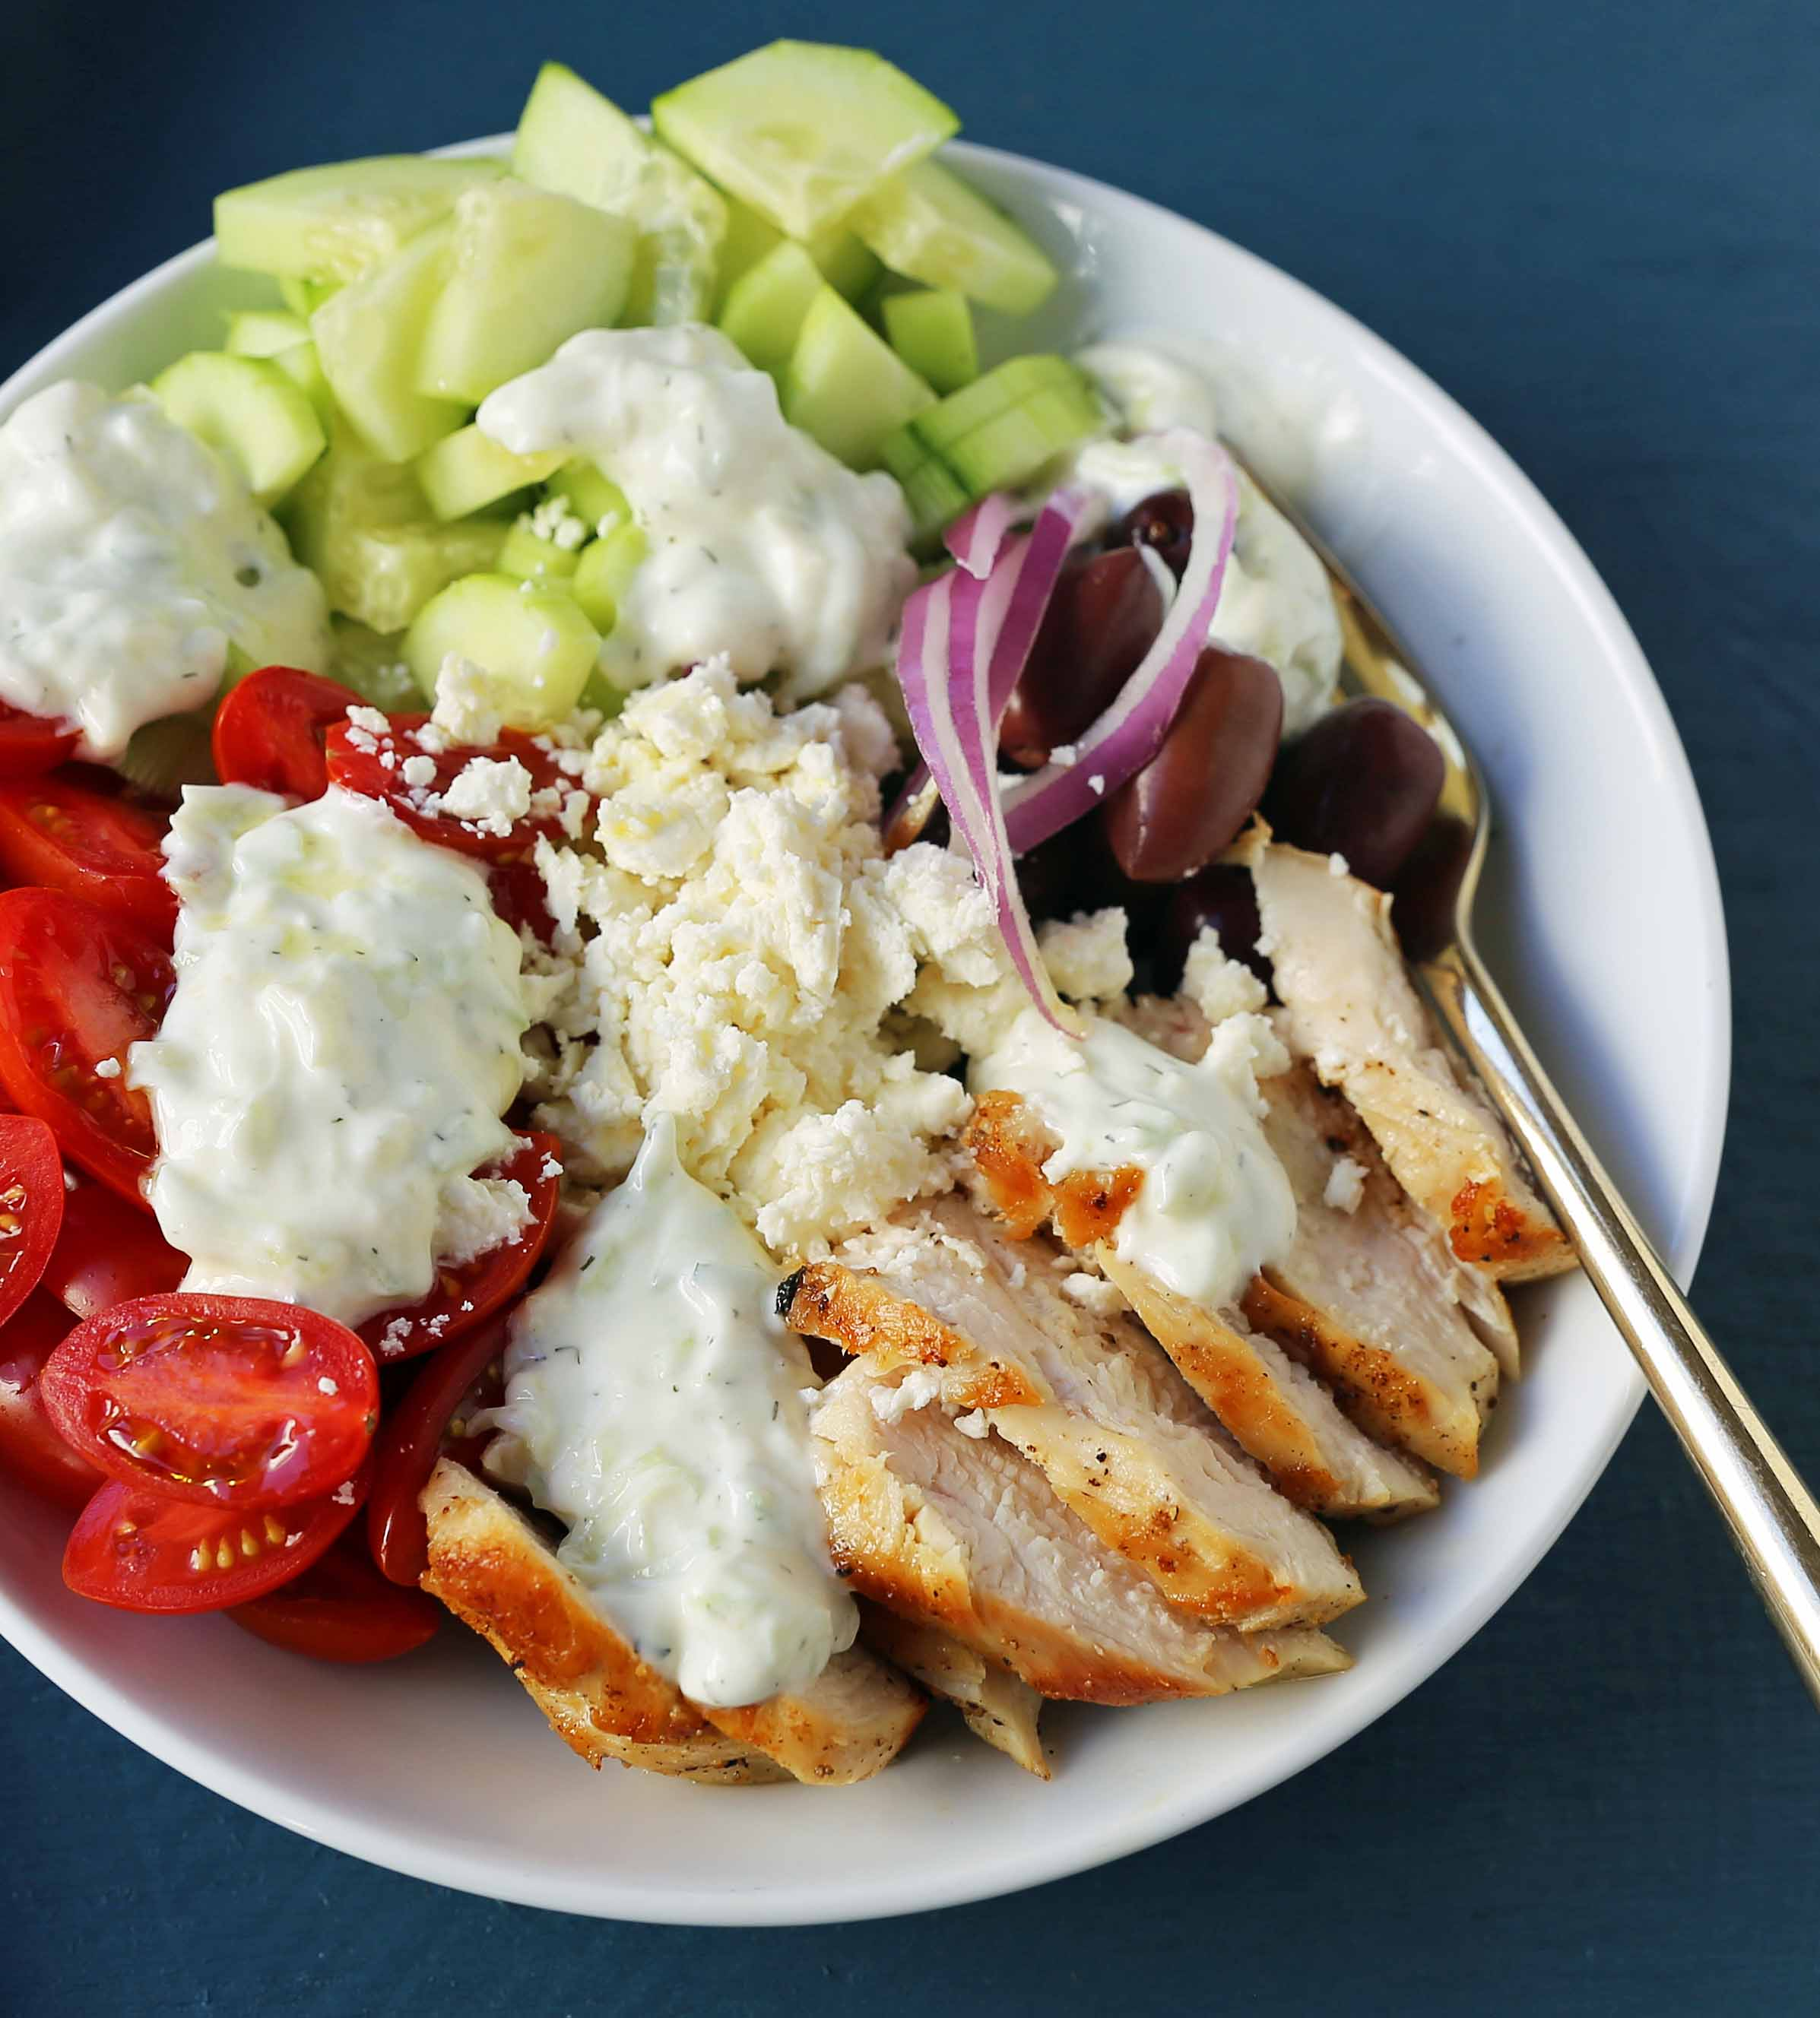 Greek Chicken Bowls. Grilled Greek Lemon Chicken, cucumber, tomatoes, red onion, kalamata olives, feta cheese, and homemade tzatziki sauce all in one bowl. A high-protein and low carb meal! www.modernhoney.com #greekchickenbowls #greekchickenbowl #greekfood #glutenfree